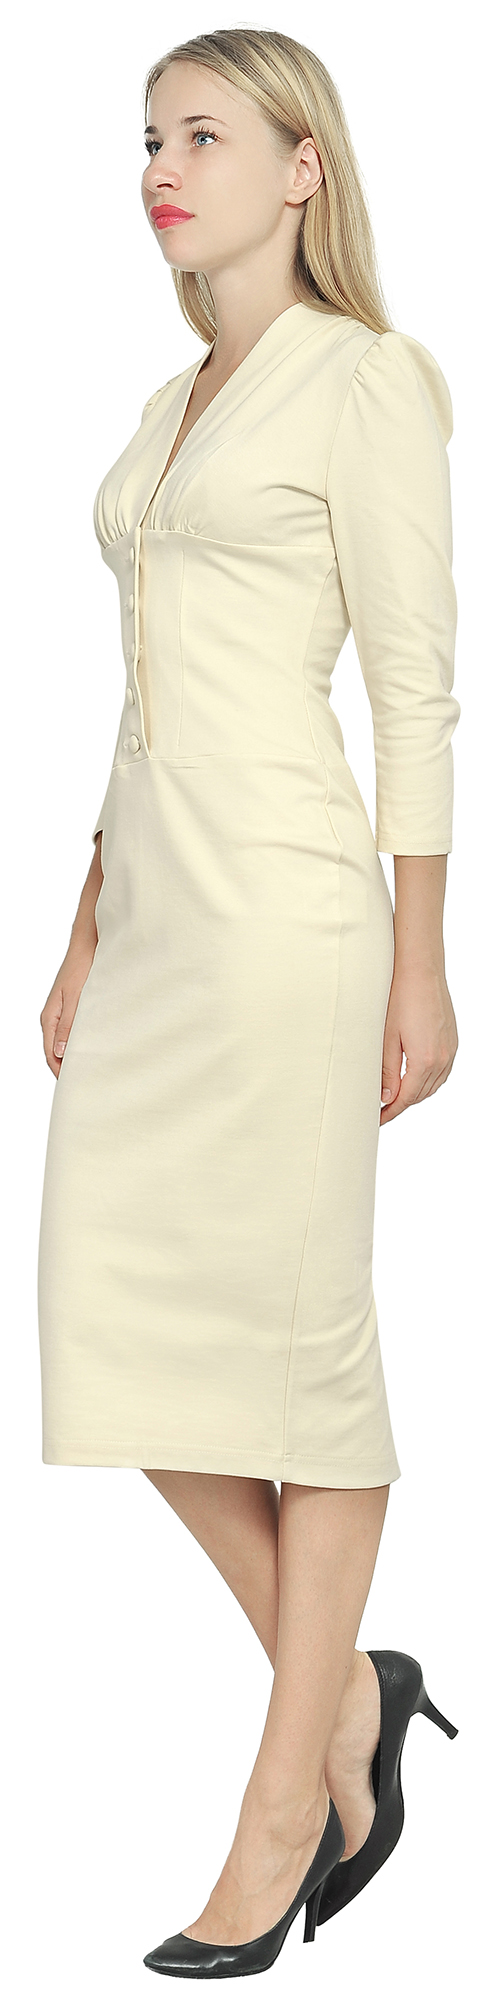 12812a8eb9f MARYCRAFTS WOMEN S VINTAGE 1940S PENCIL WORK OFFICE DRESS COCKTAIL ...